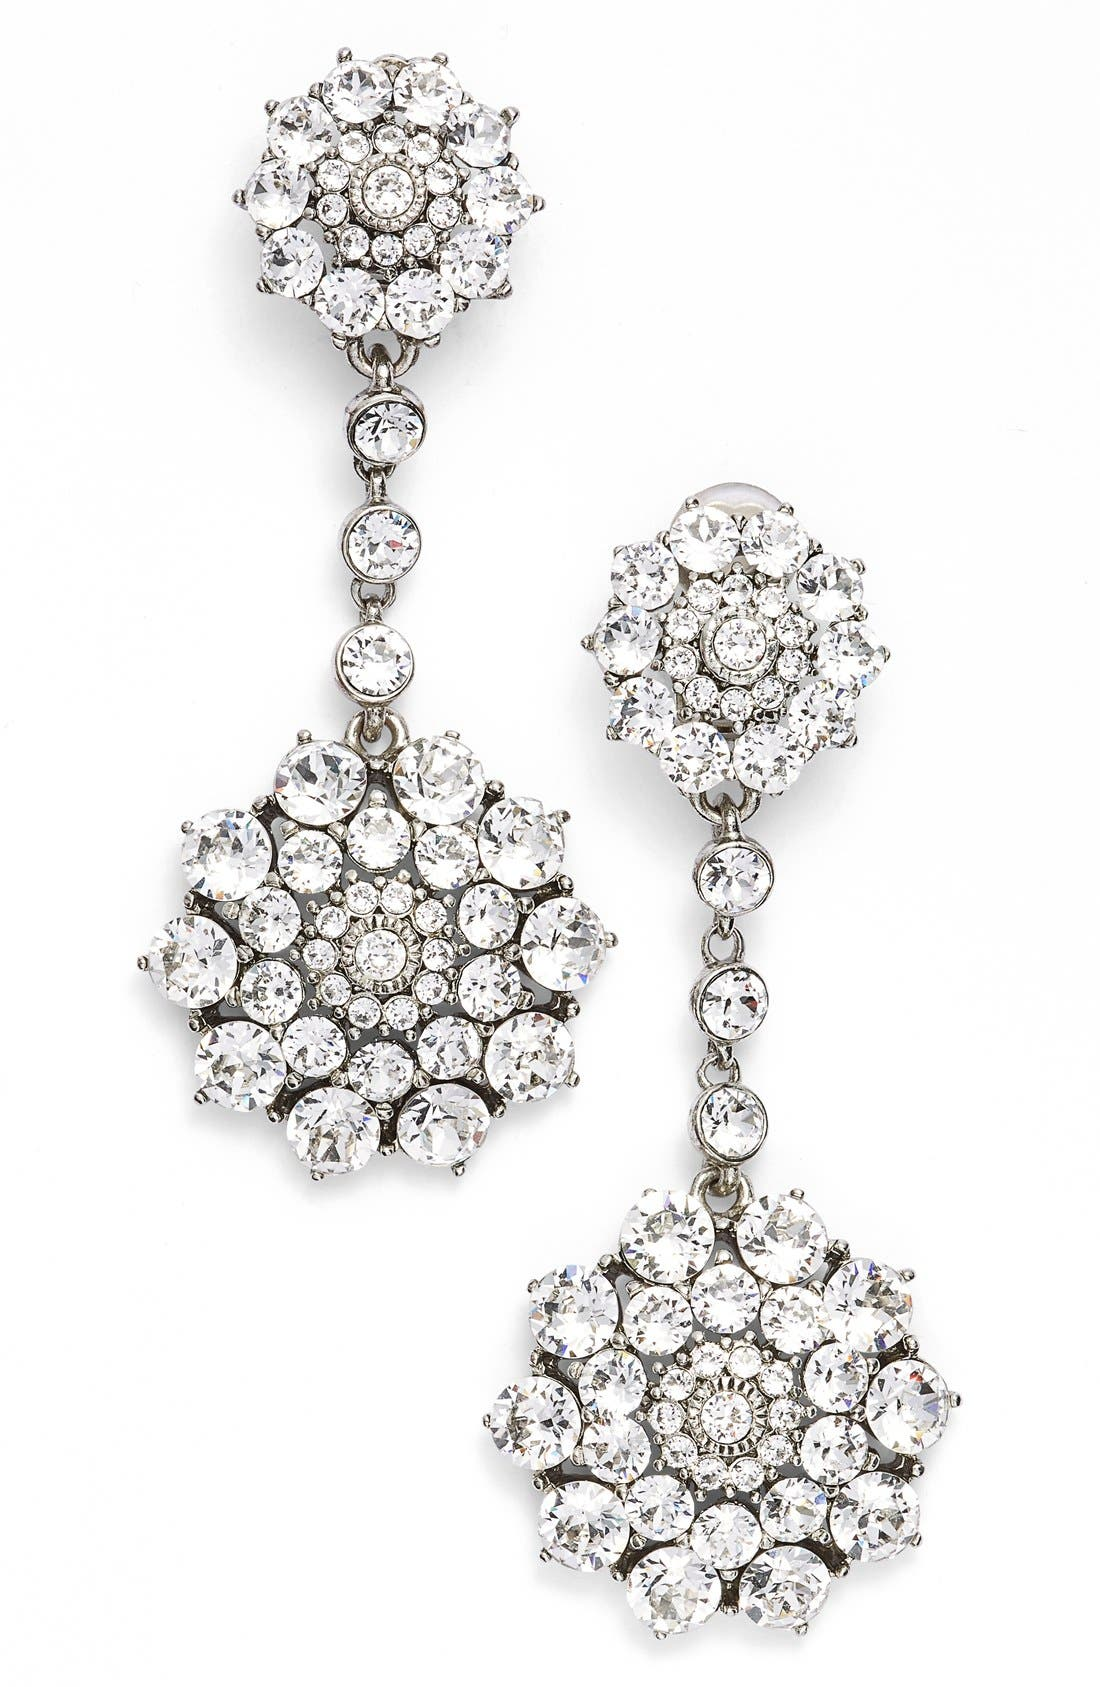 OSCAR DE LA RENTA Classic Jeweled Swarovski Crystal Drop Earrings